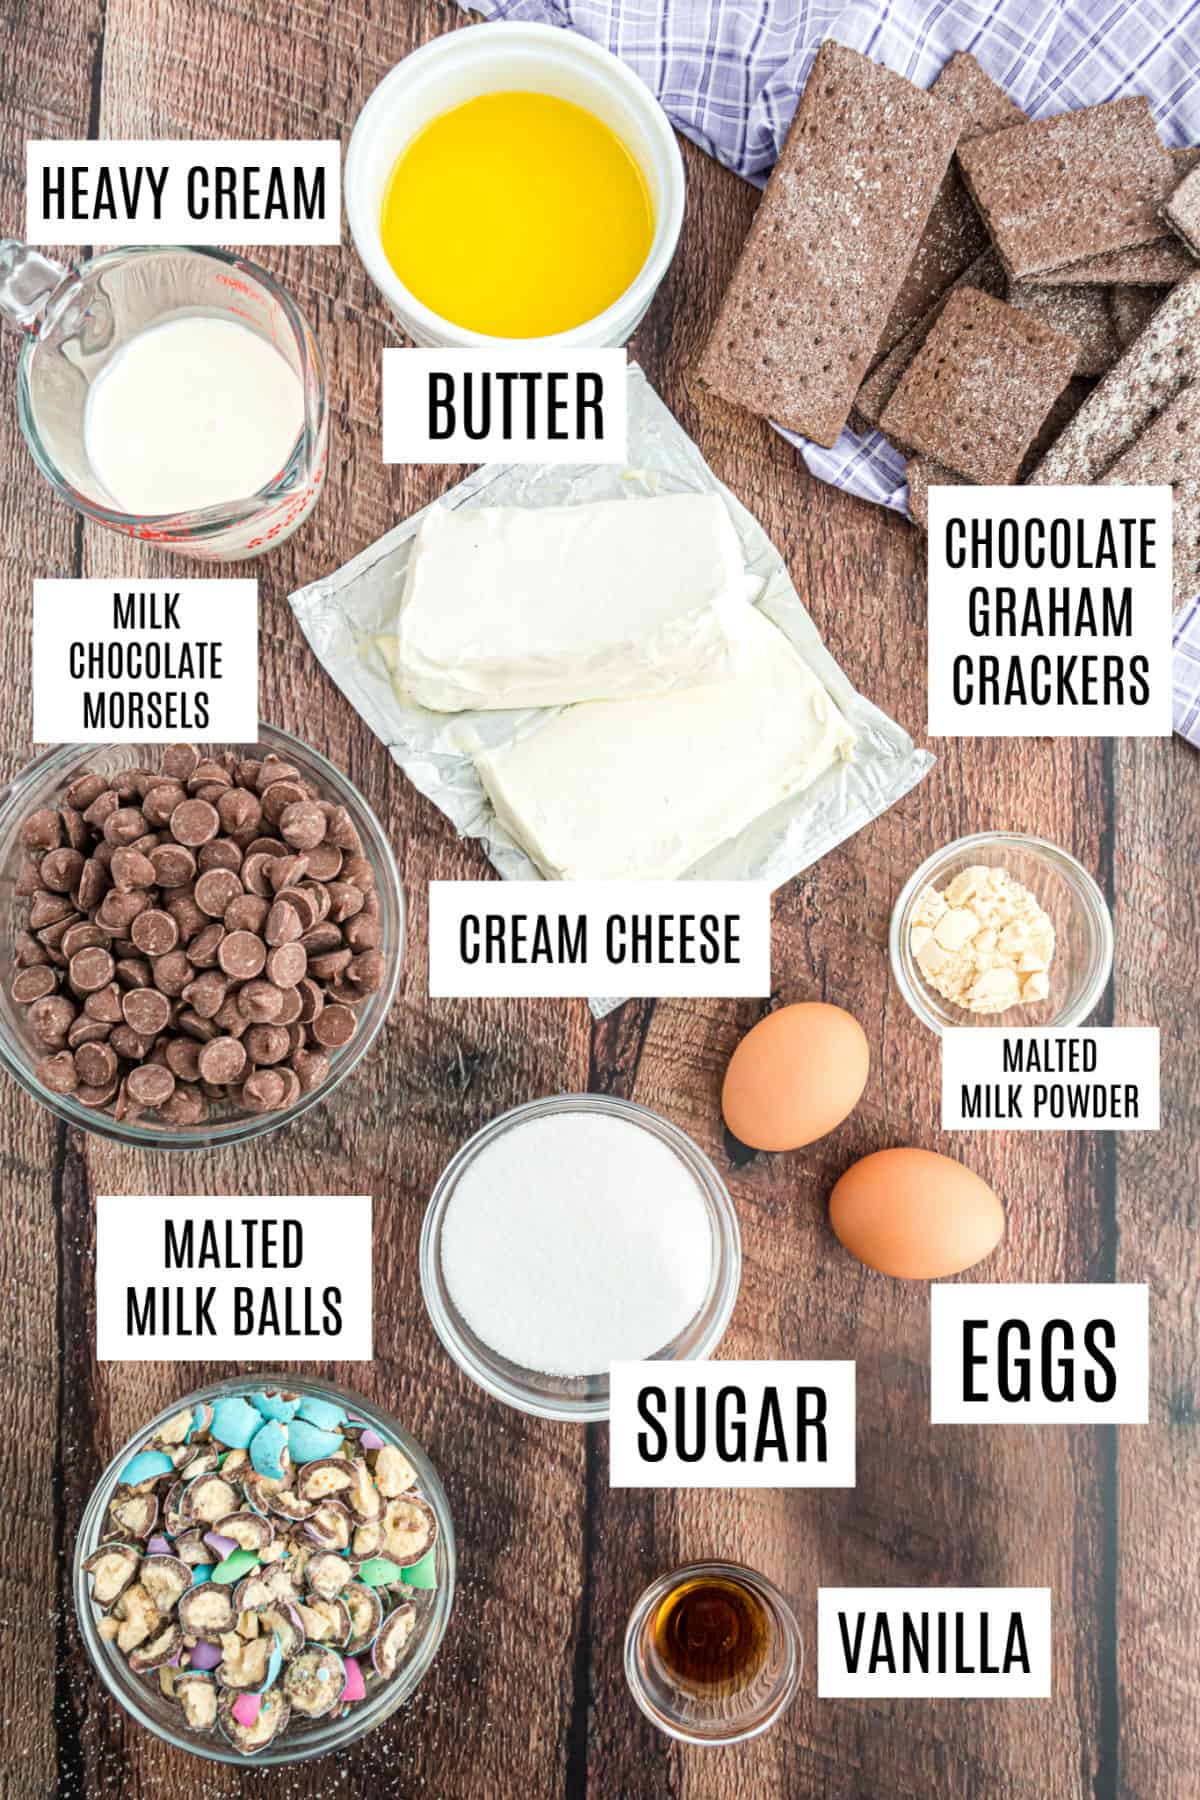 Ingredients needed for mini cheesecakes with candy and ganache.